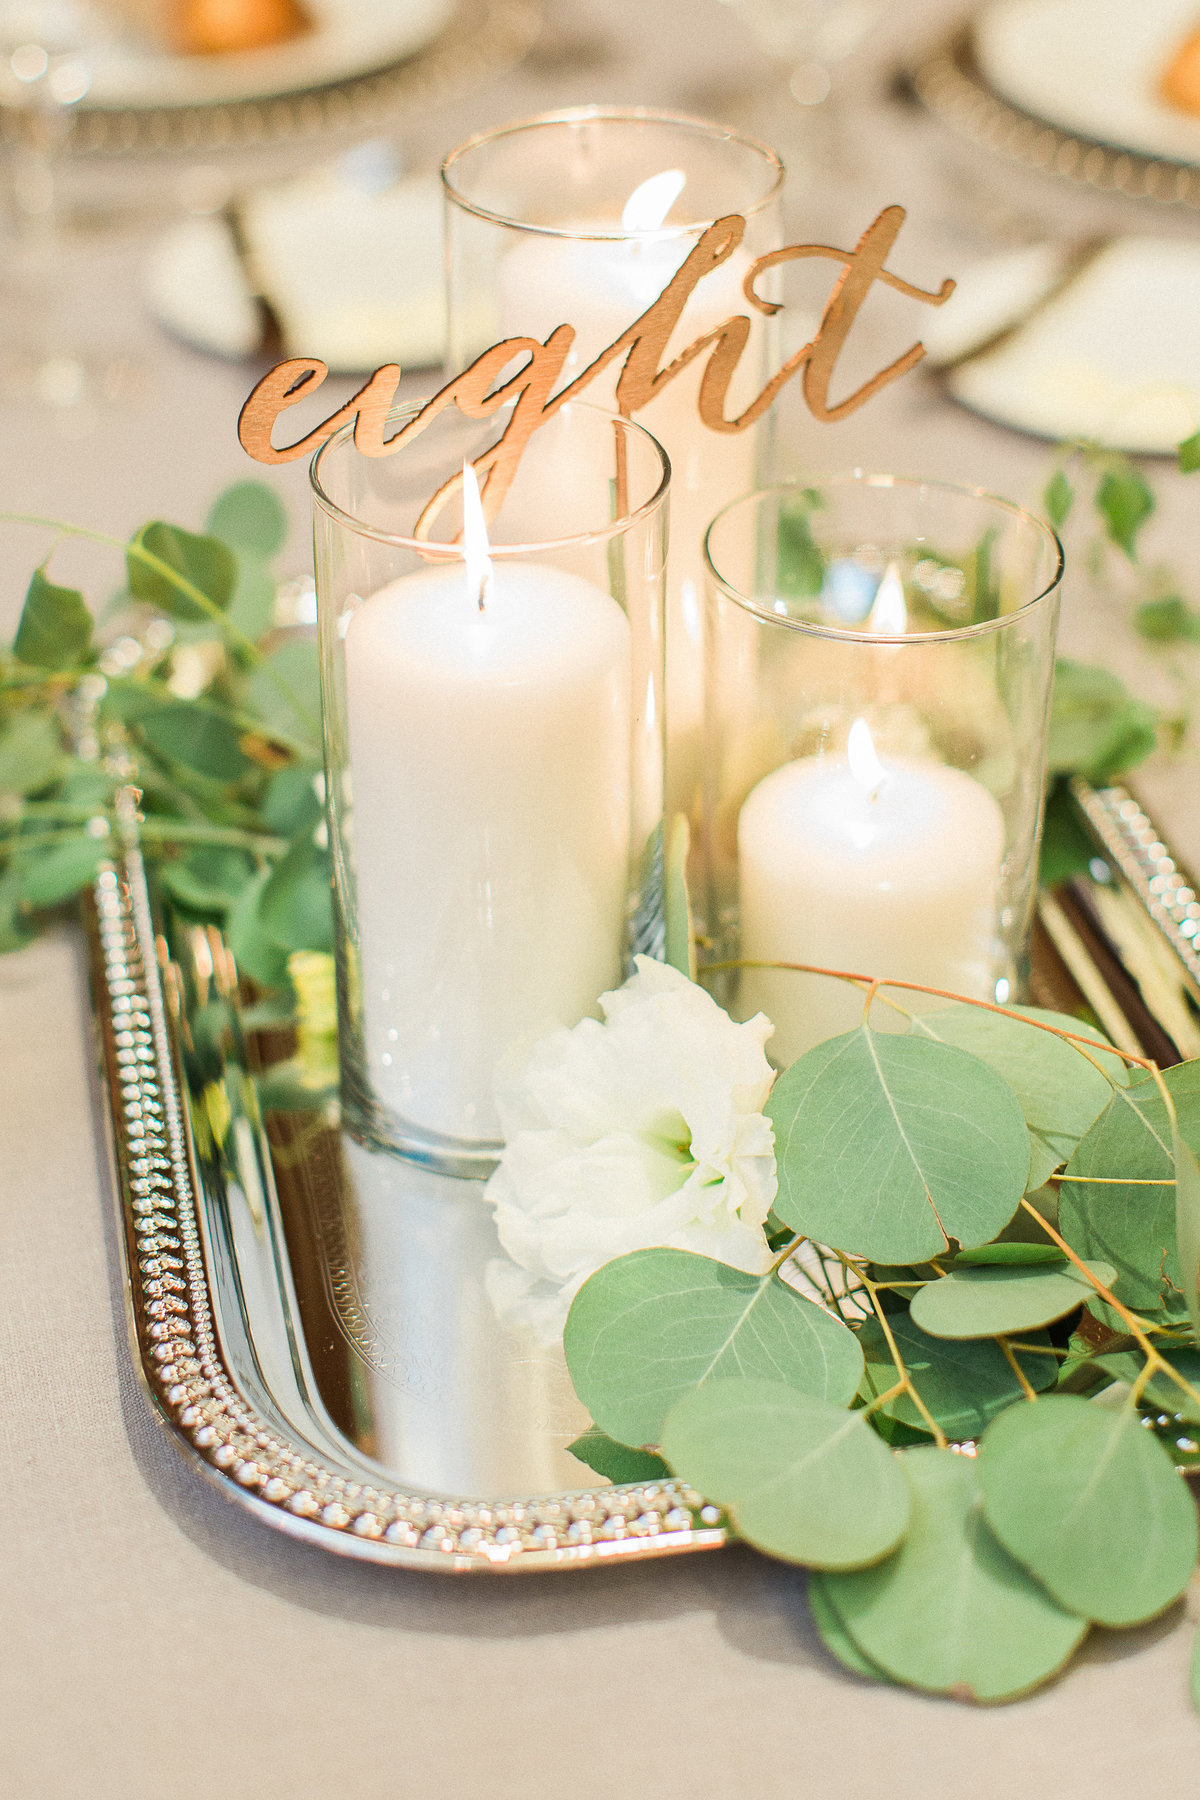 Imoni-Events-Elyse-Hall-Montelucia-1093